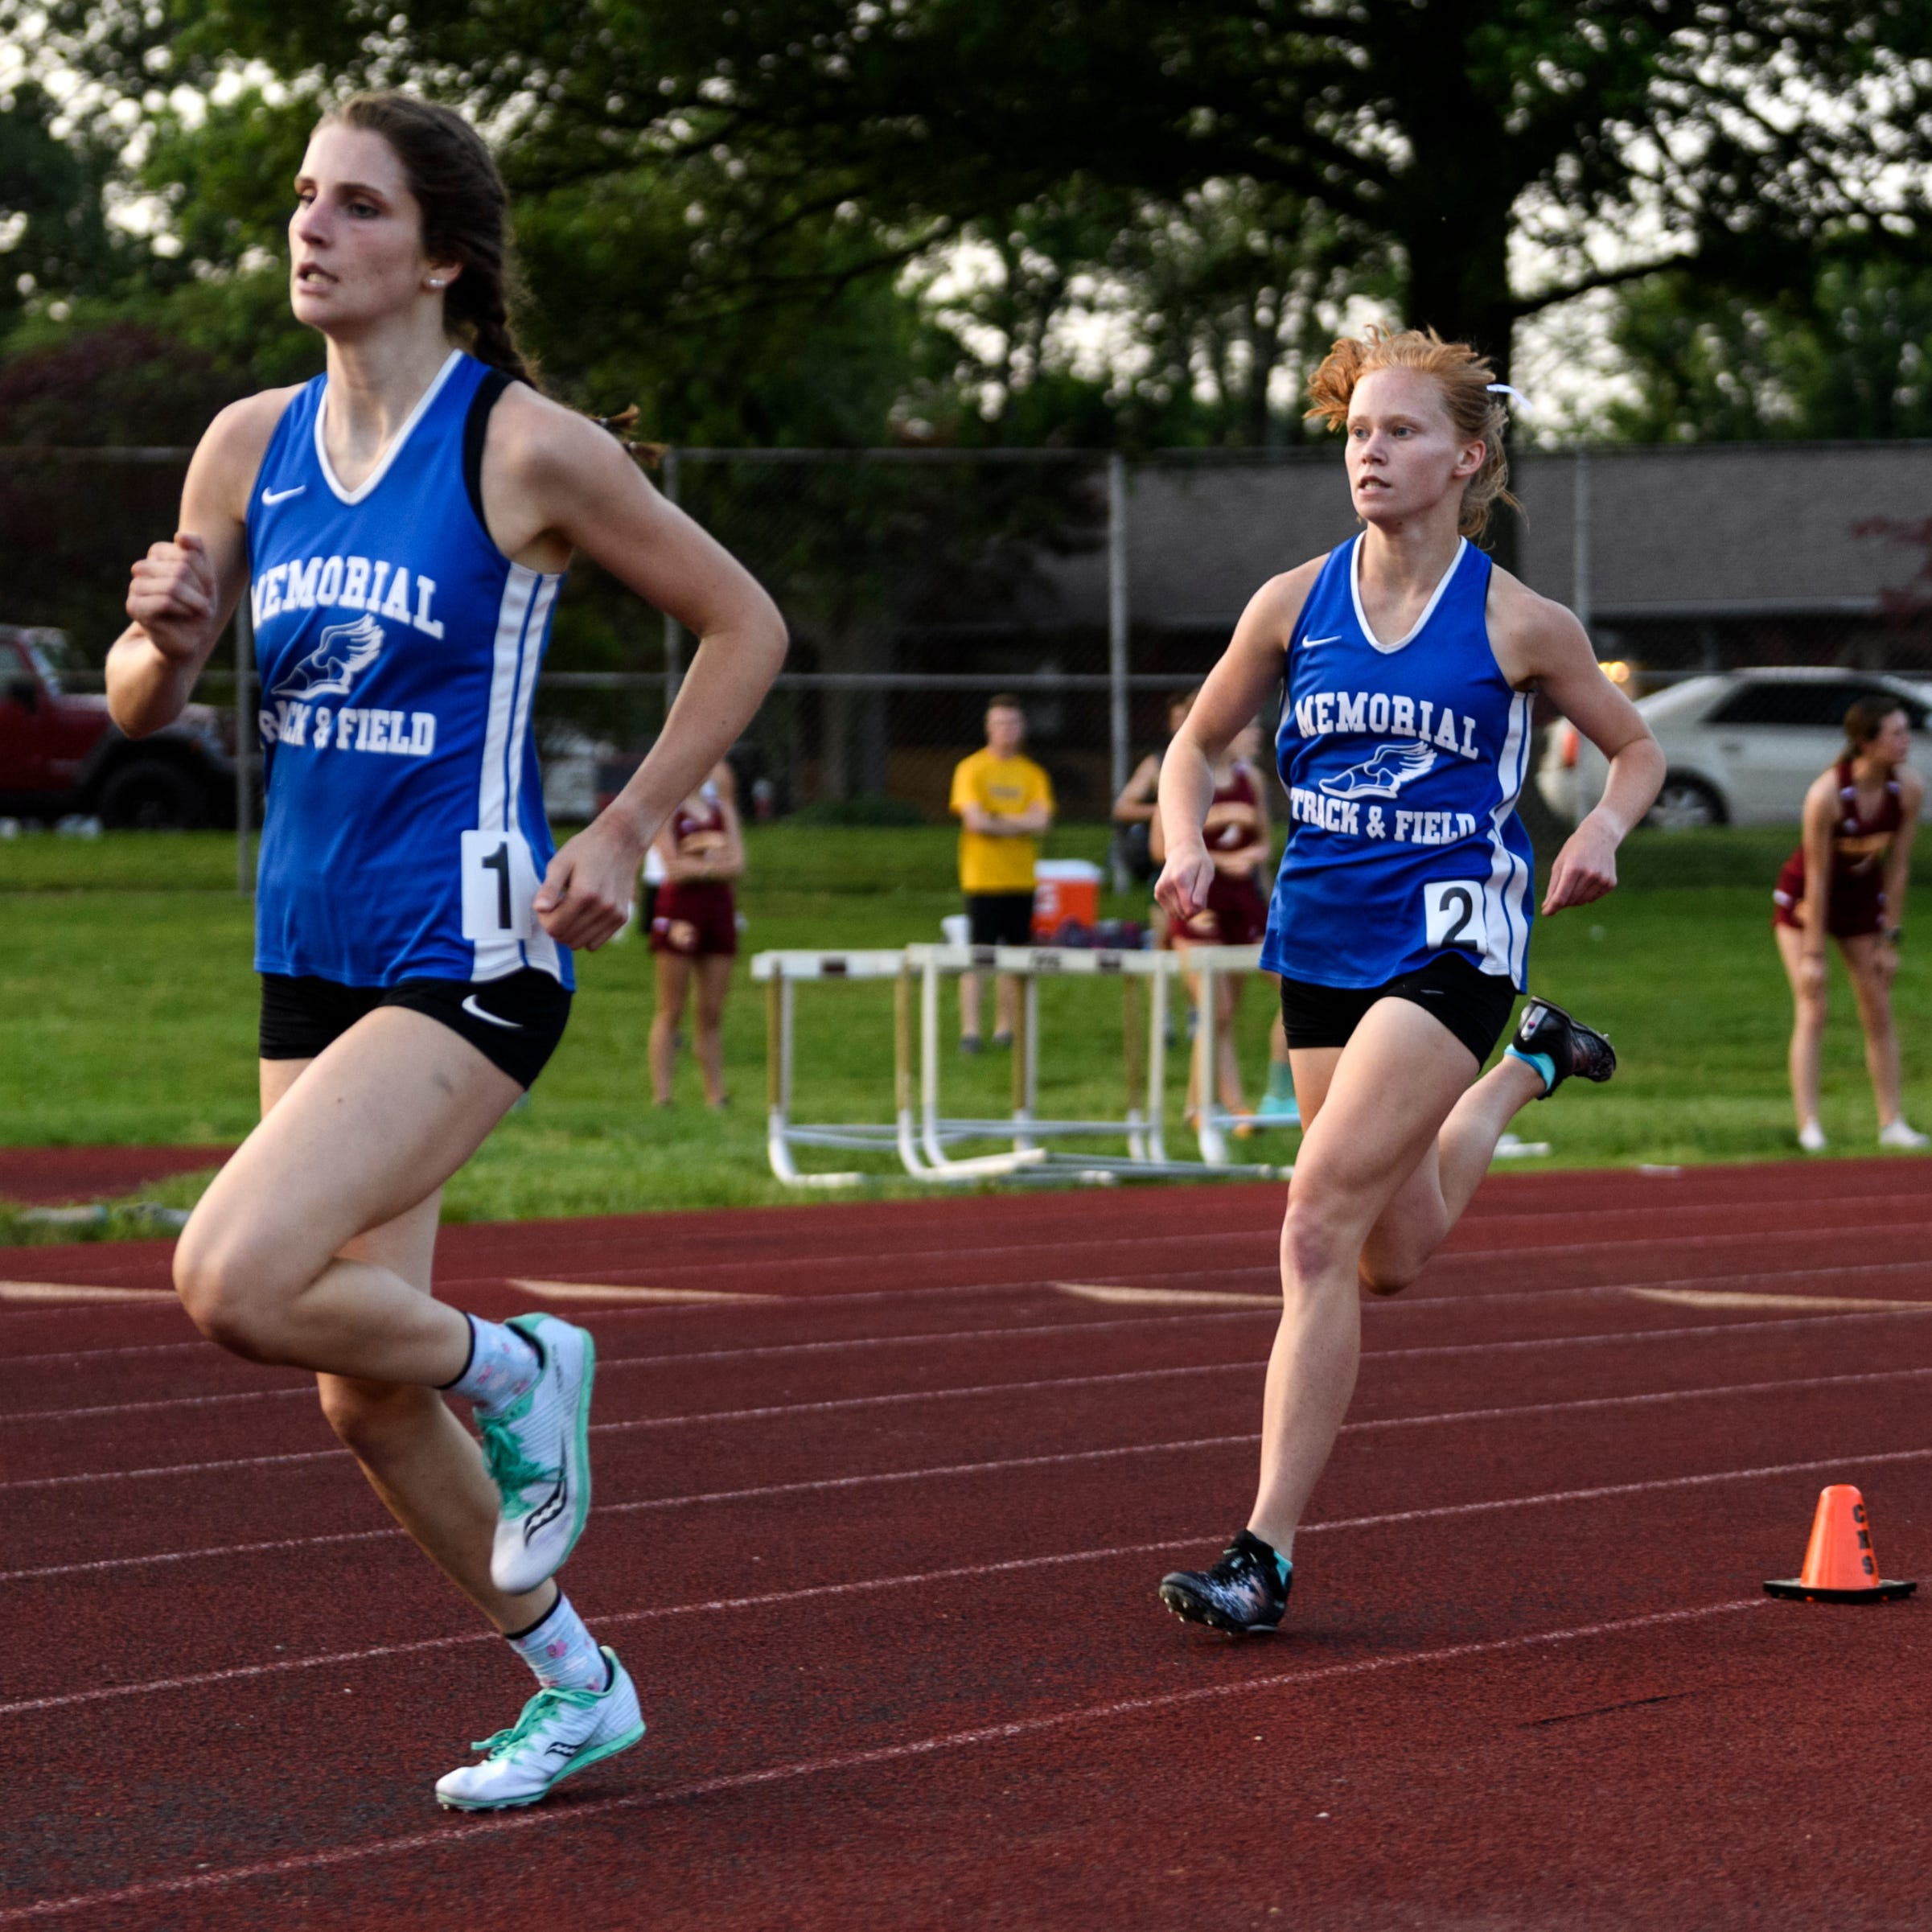 Allison Morphew finds extra gear, wins 800; Memorial girls 2nd in regional